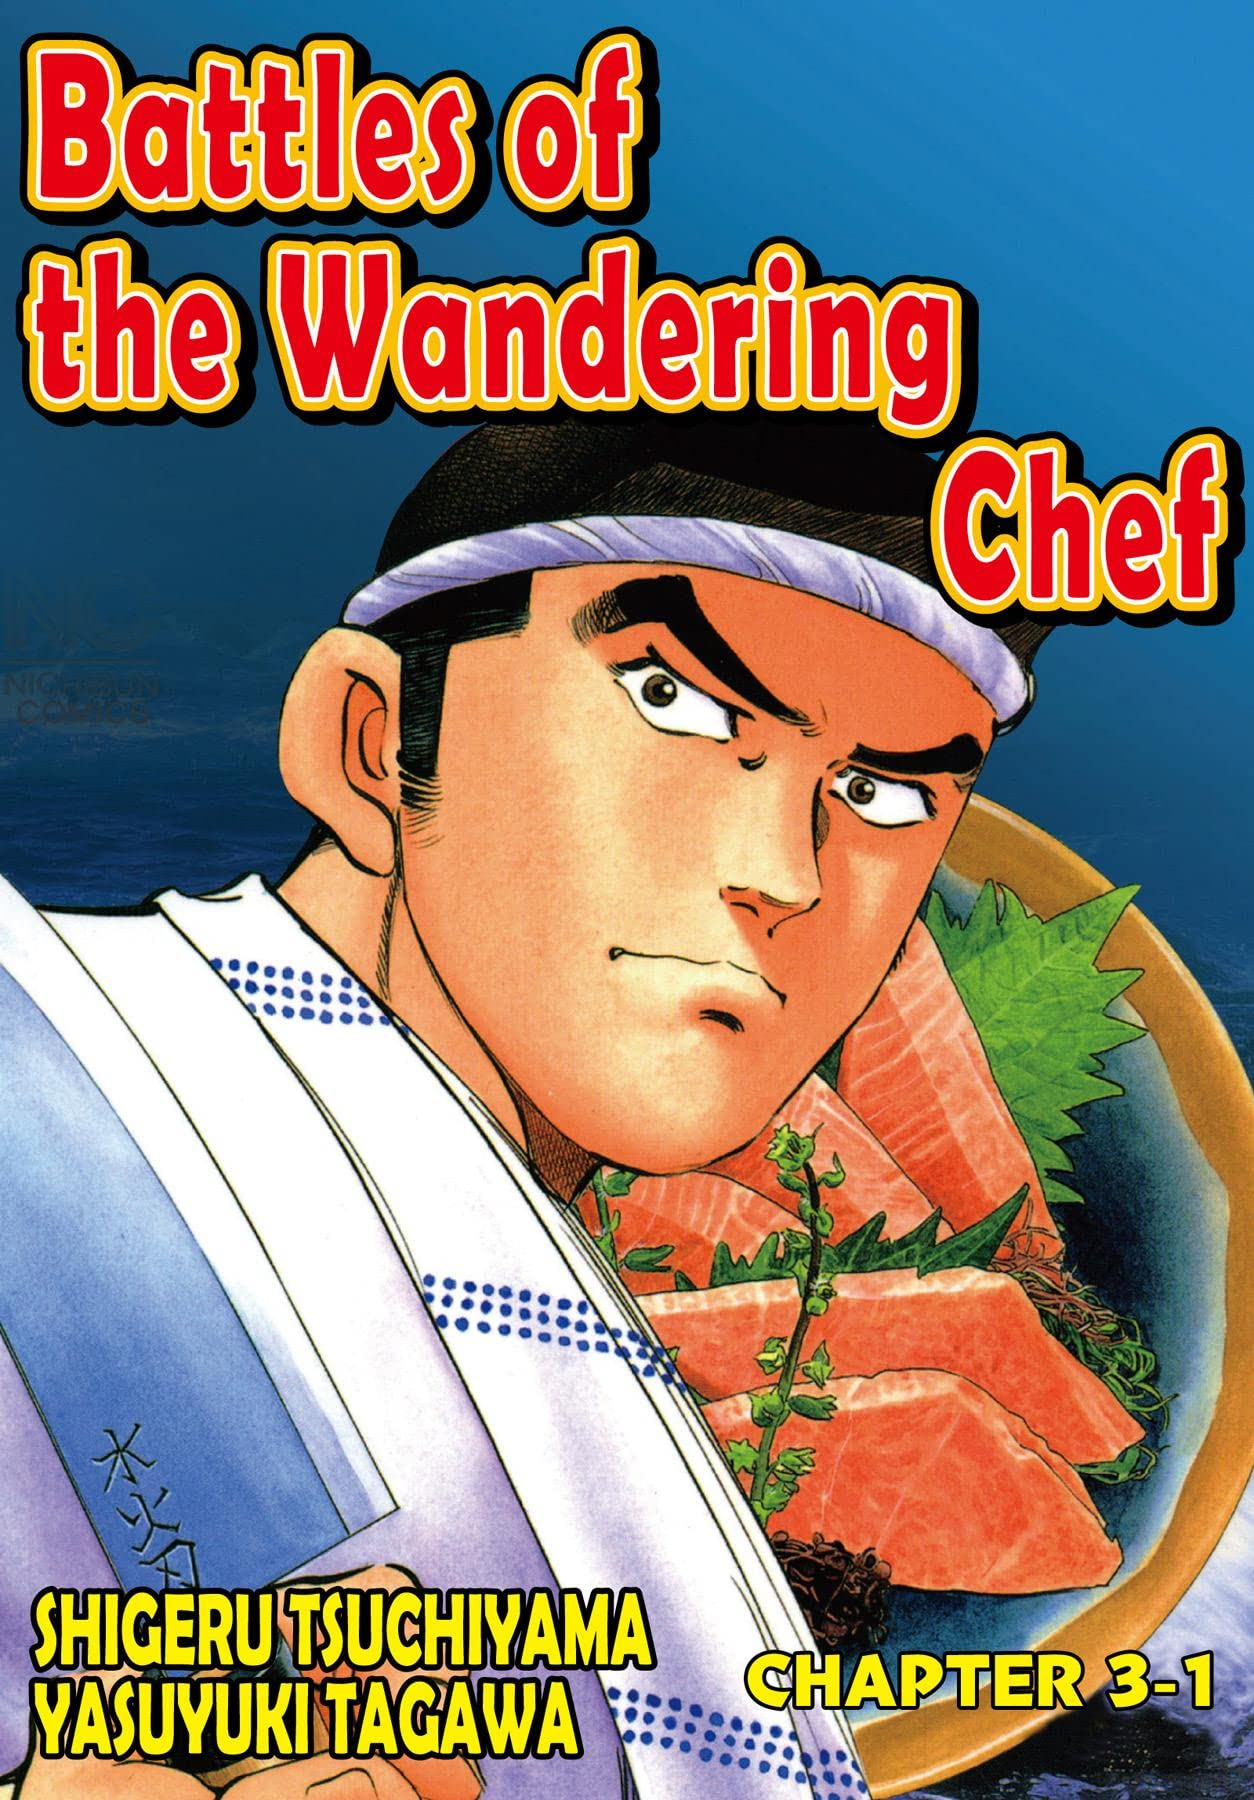 BATTLES OF THE WANDERING CHEF #16